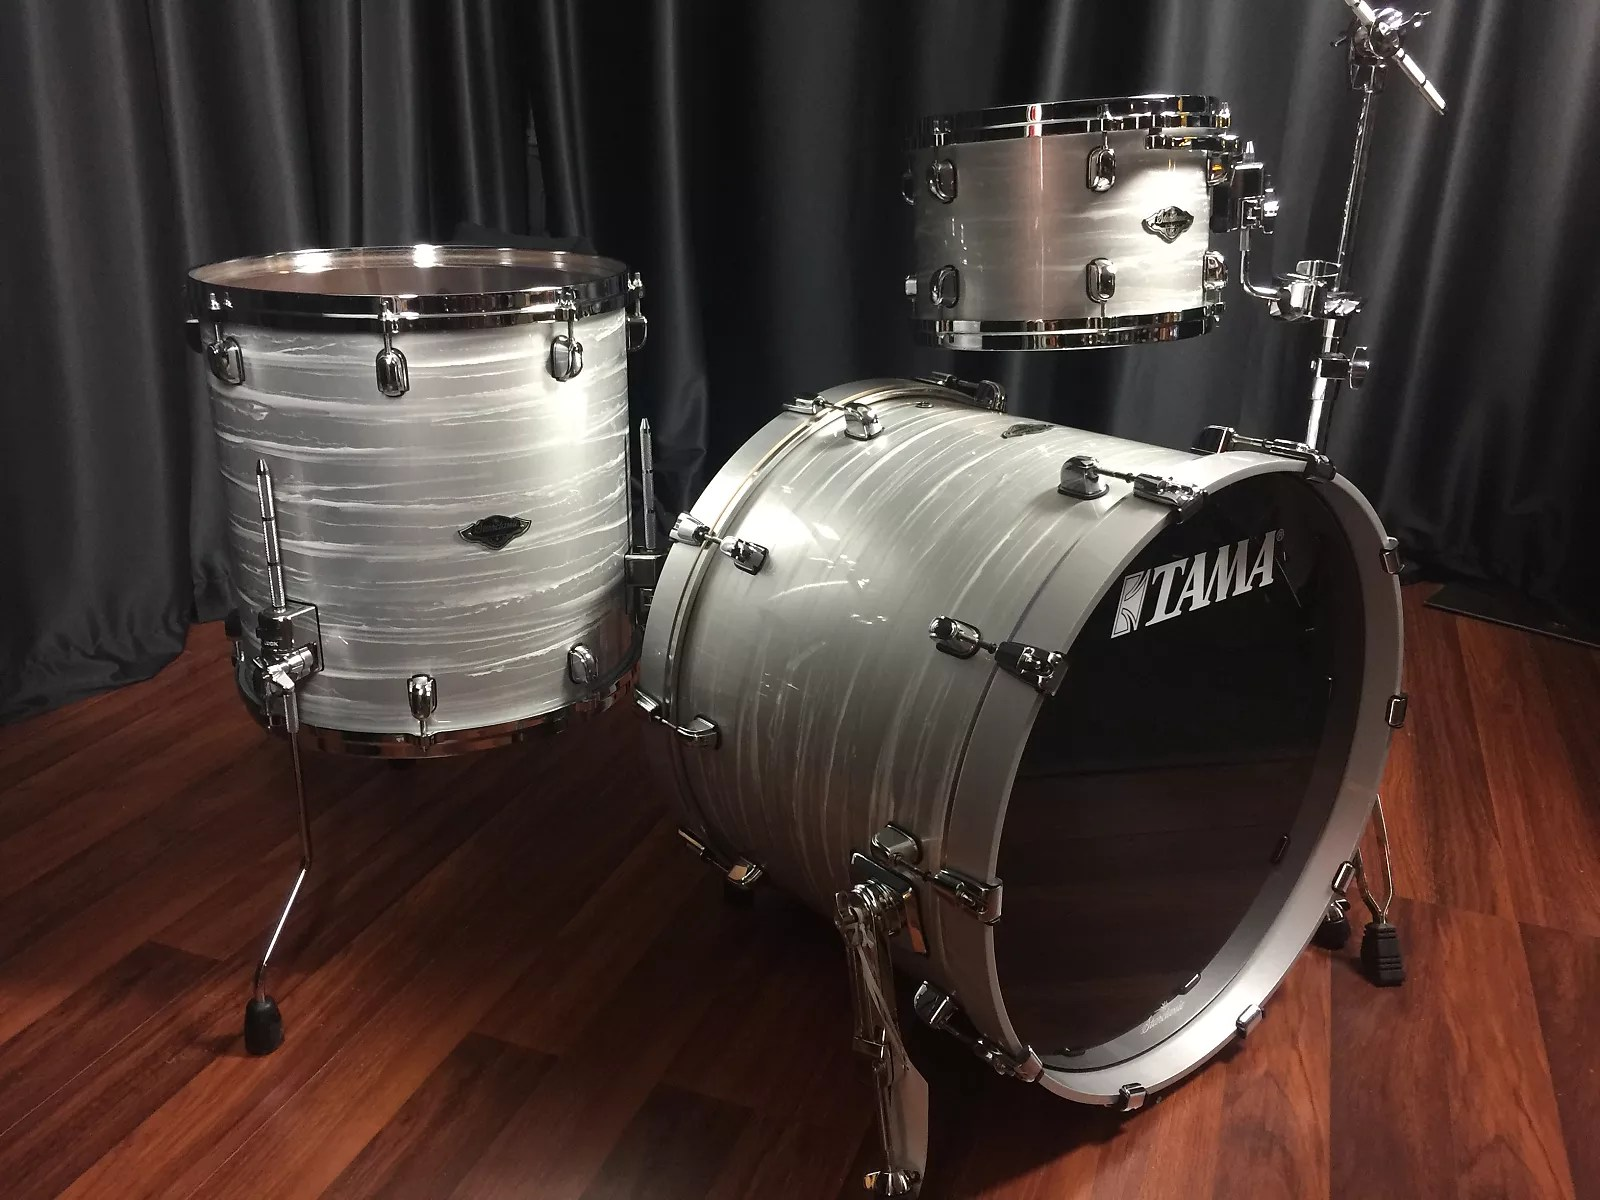 Tama drums sets Starclassic Performer BB Lacquered White Oyster kit     Tama drums sets Starclassic Performer BB Lacquered White Oyster kit 12 16   22